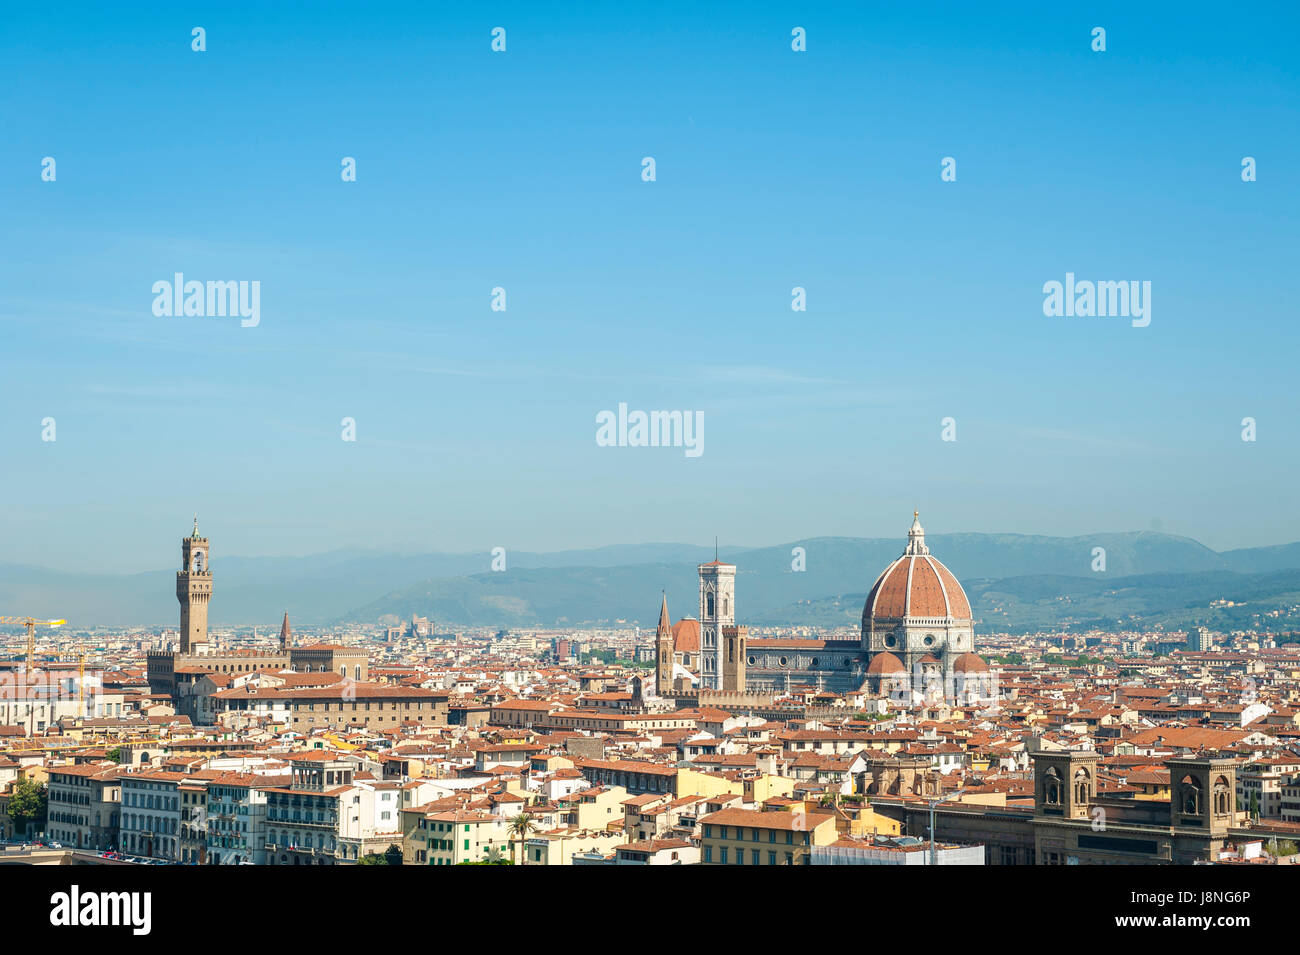 Scenic skyline view of Florence, Italy dominated by the terra-cotta dome of the Cattedrale di Santa Maria del Fiore - Stock Image